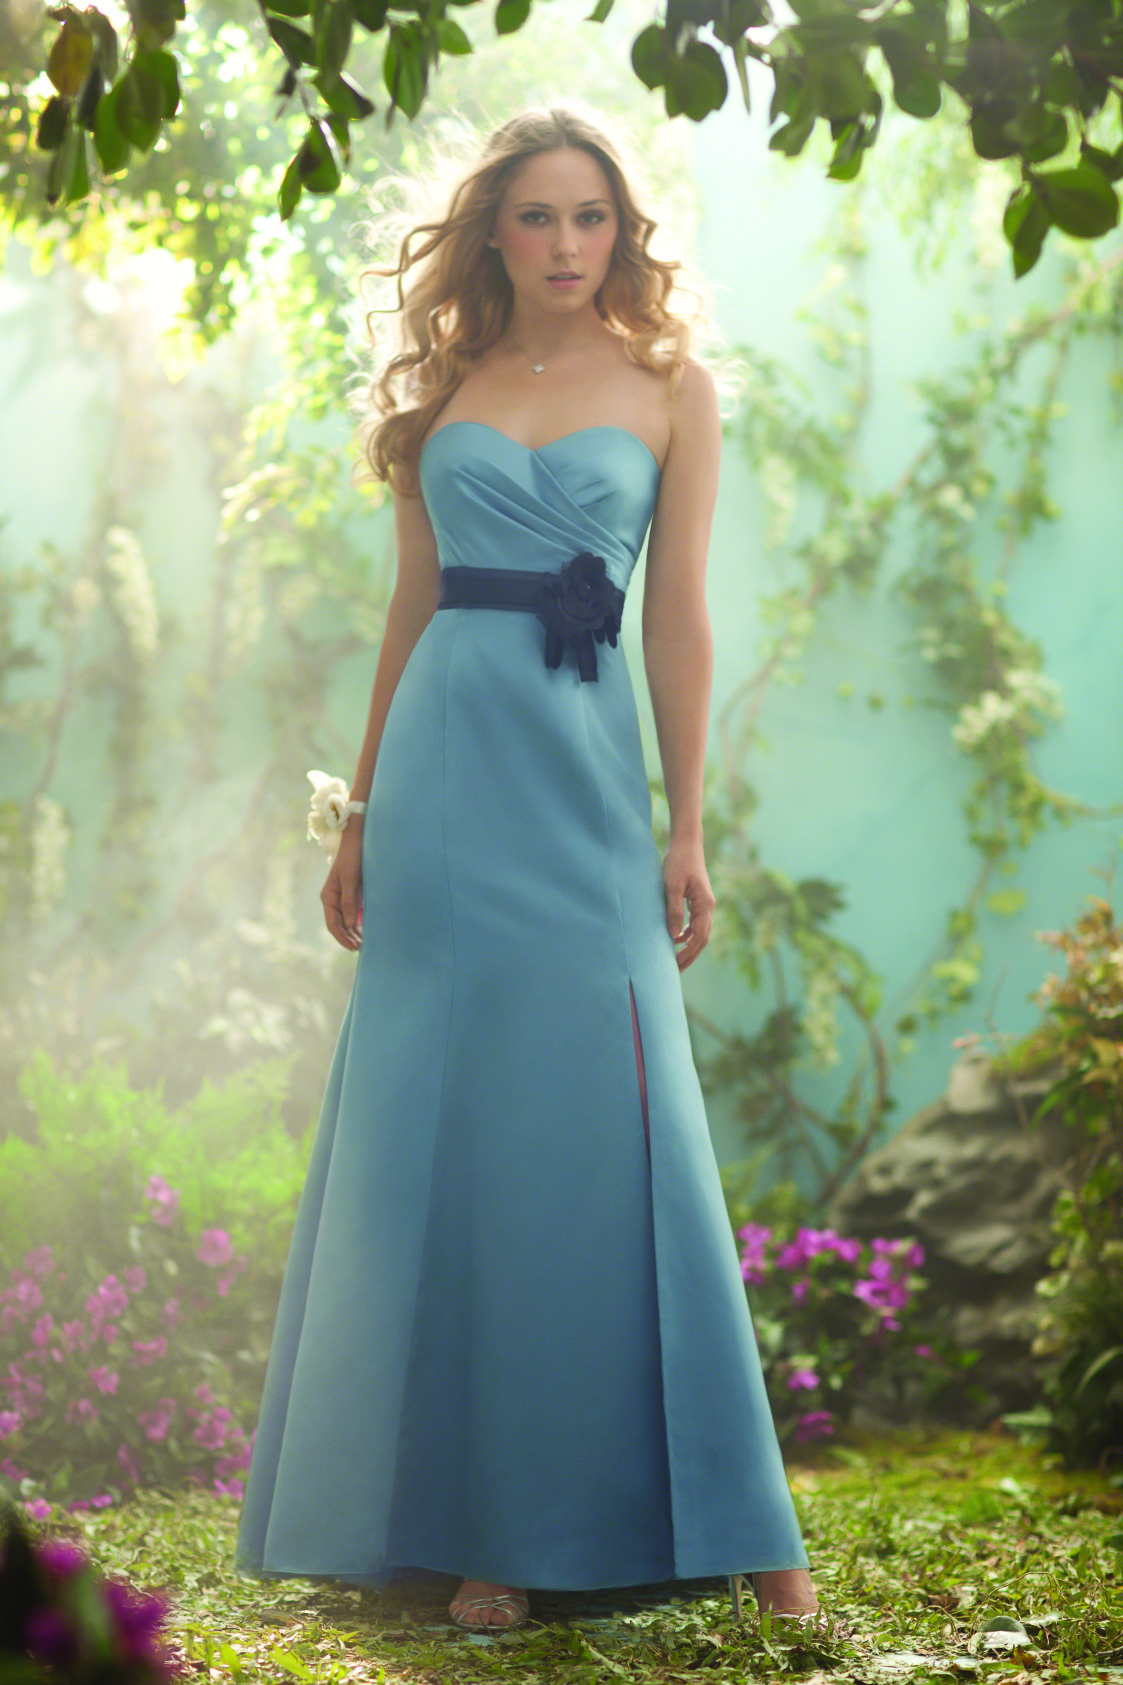 Disney bridesmaids dresses images braidsmaid dress cocktail what kind of wedding is right for you and your so playbuzz ombrellifo images ombrellifo Choice Image